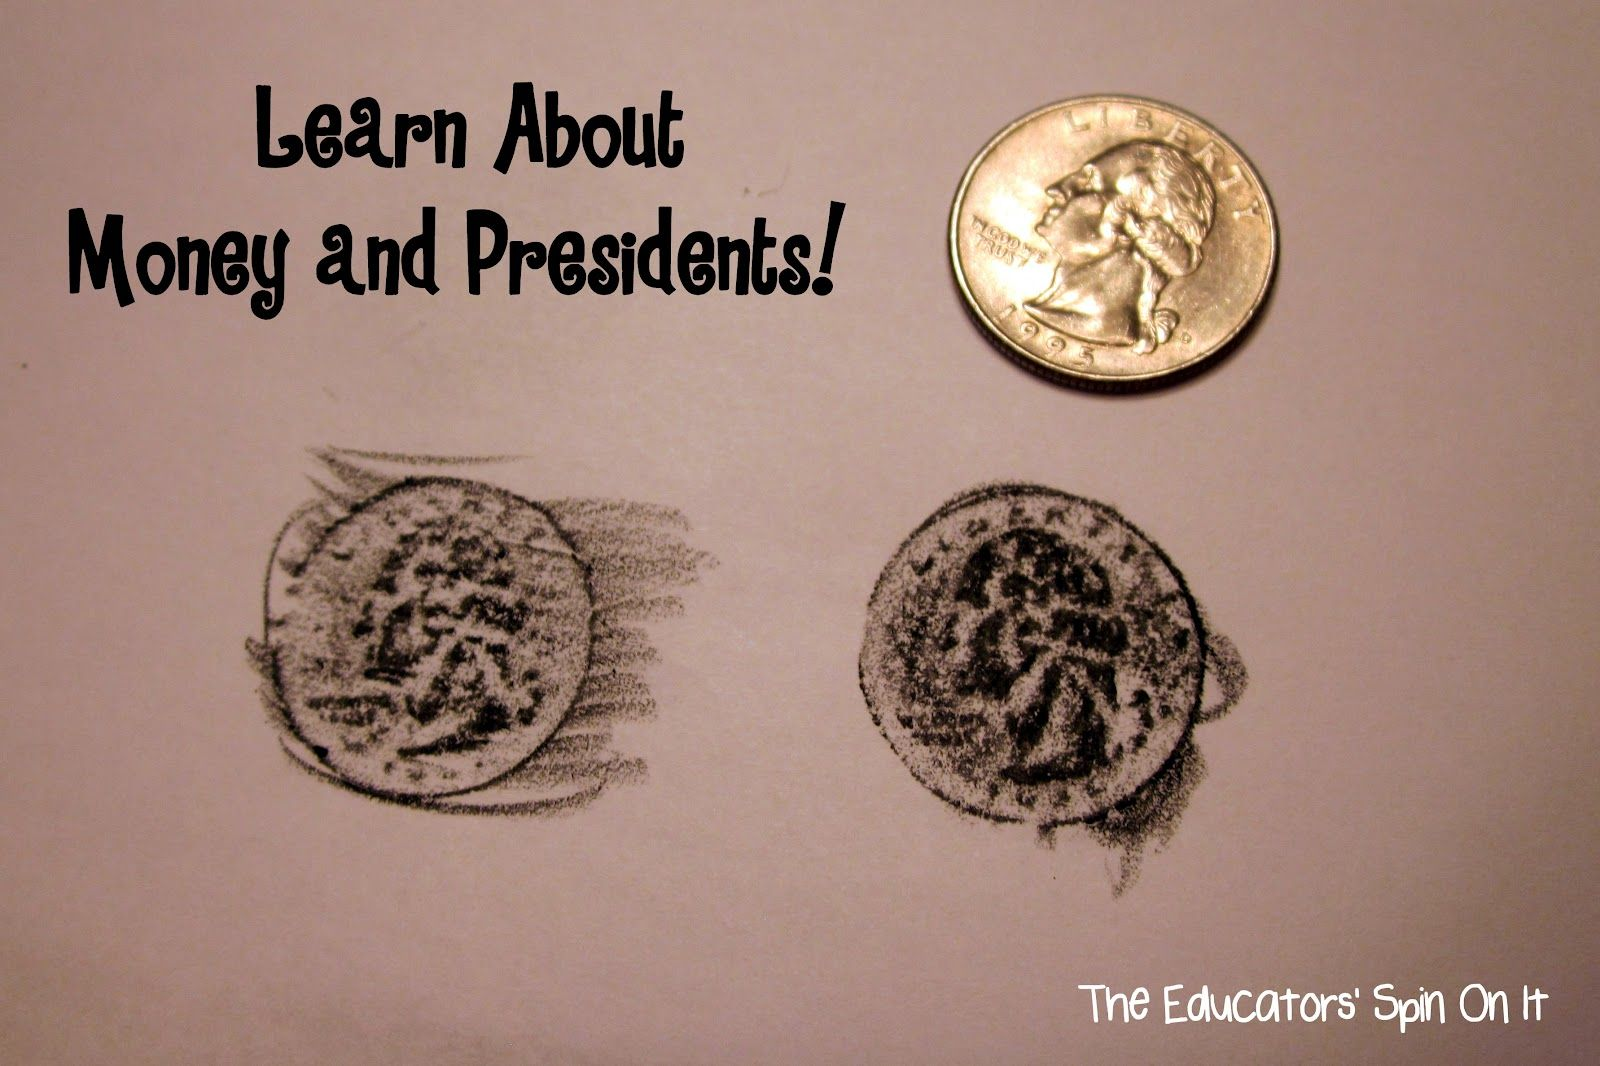 Coin Rubbings And Talk About The Presidents On Them When